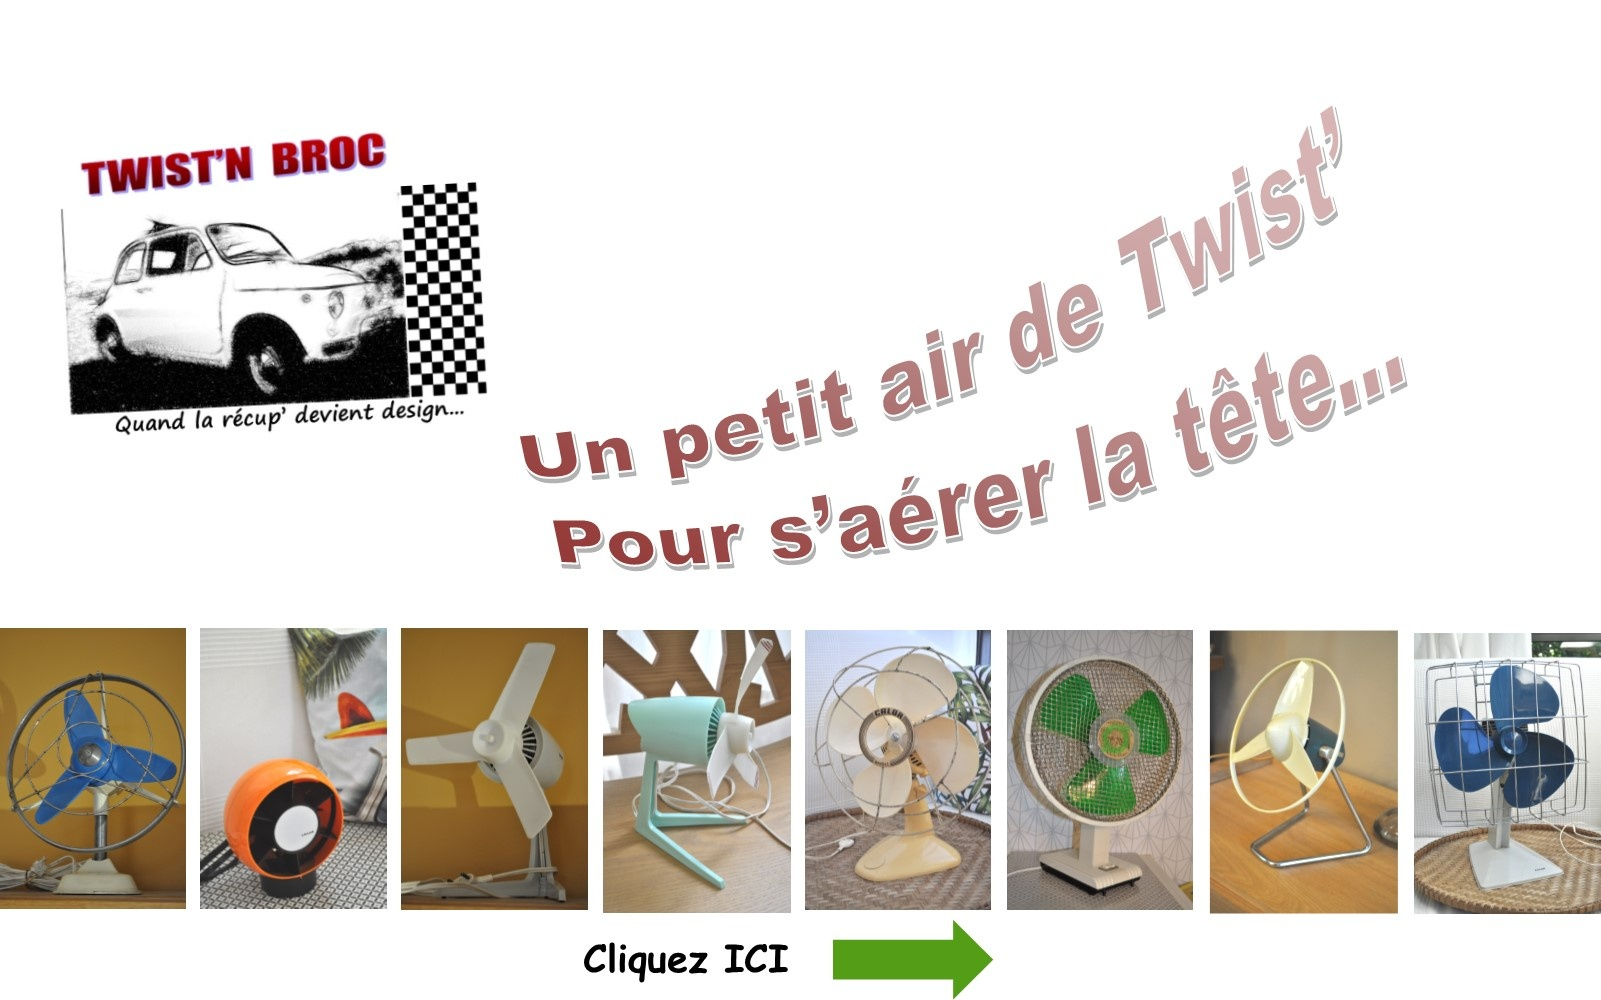 Ventilateurs Twist'n Broc